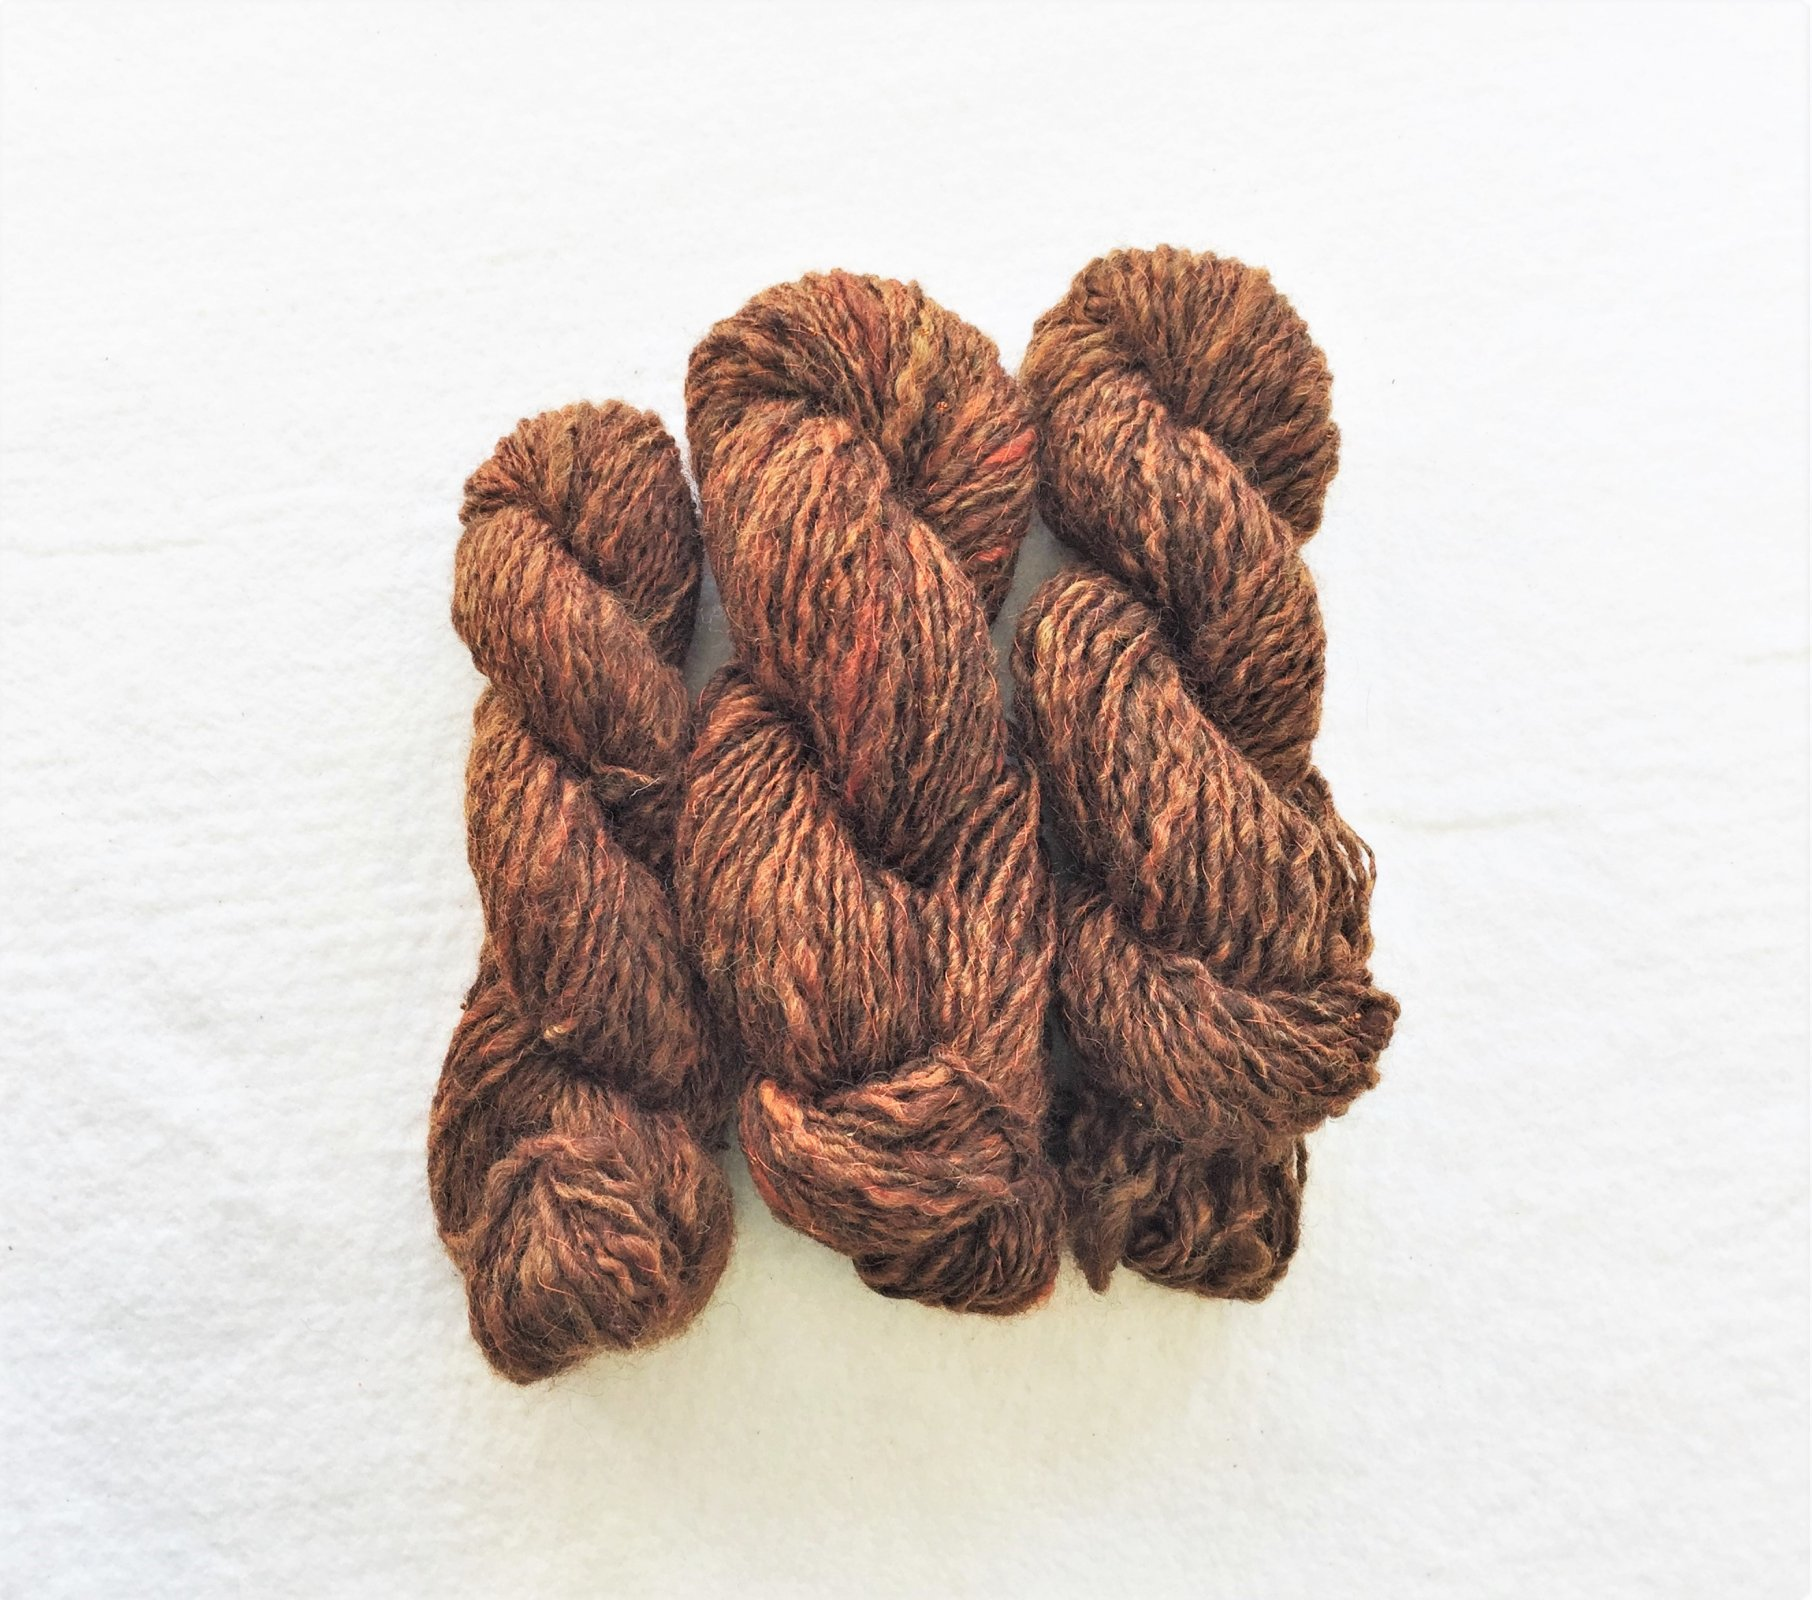 Dewdrops in Rust - Fibers by Laura - Handspun Corriedale Wool, thread plied with glass beads